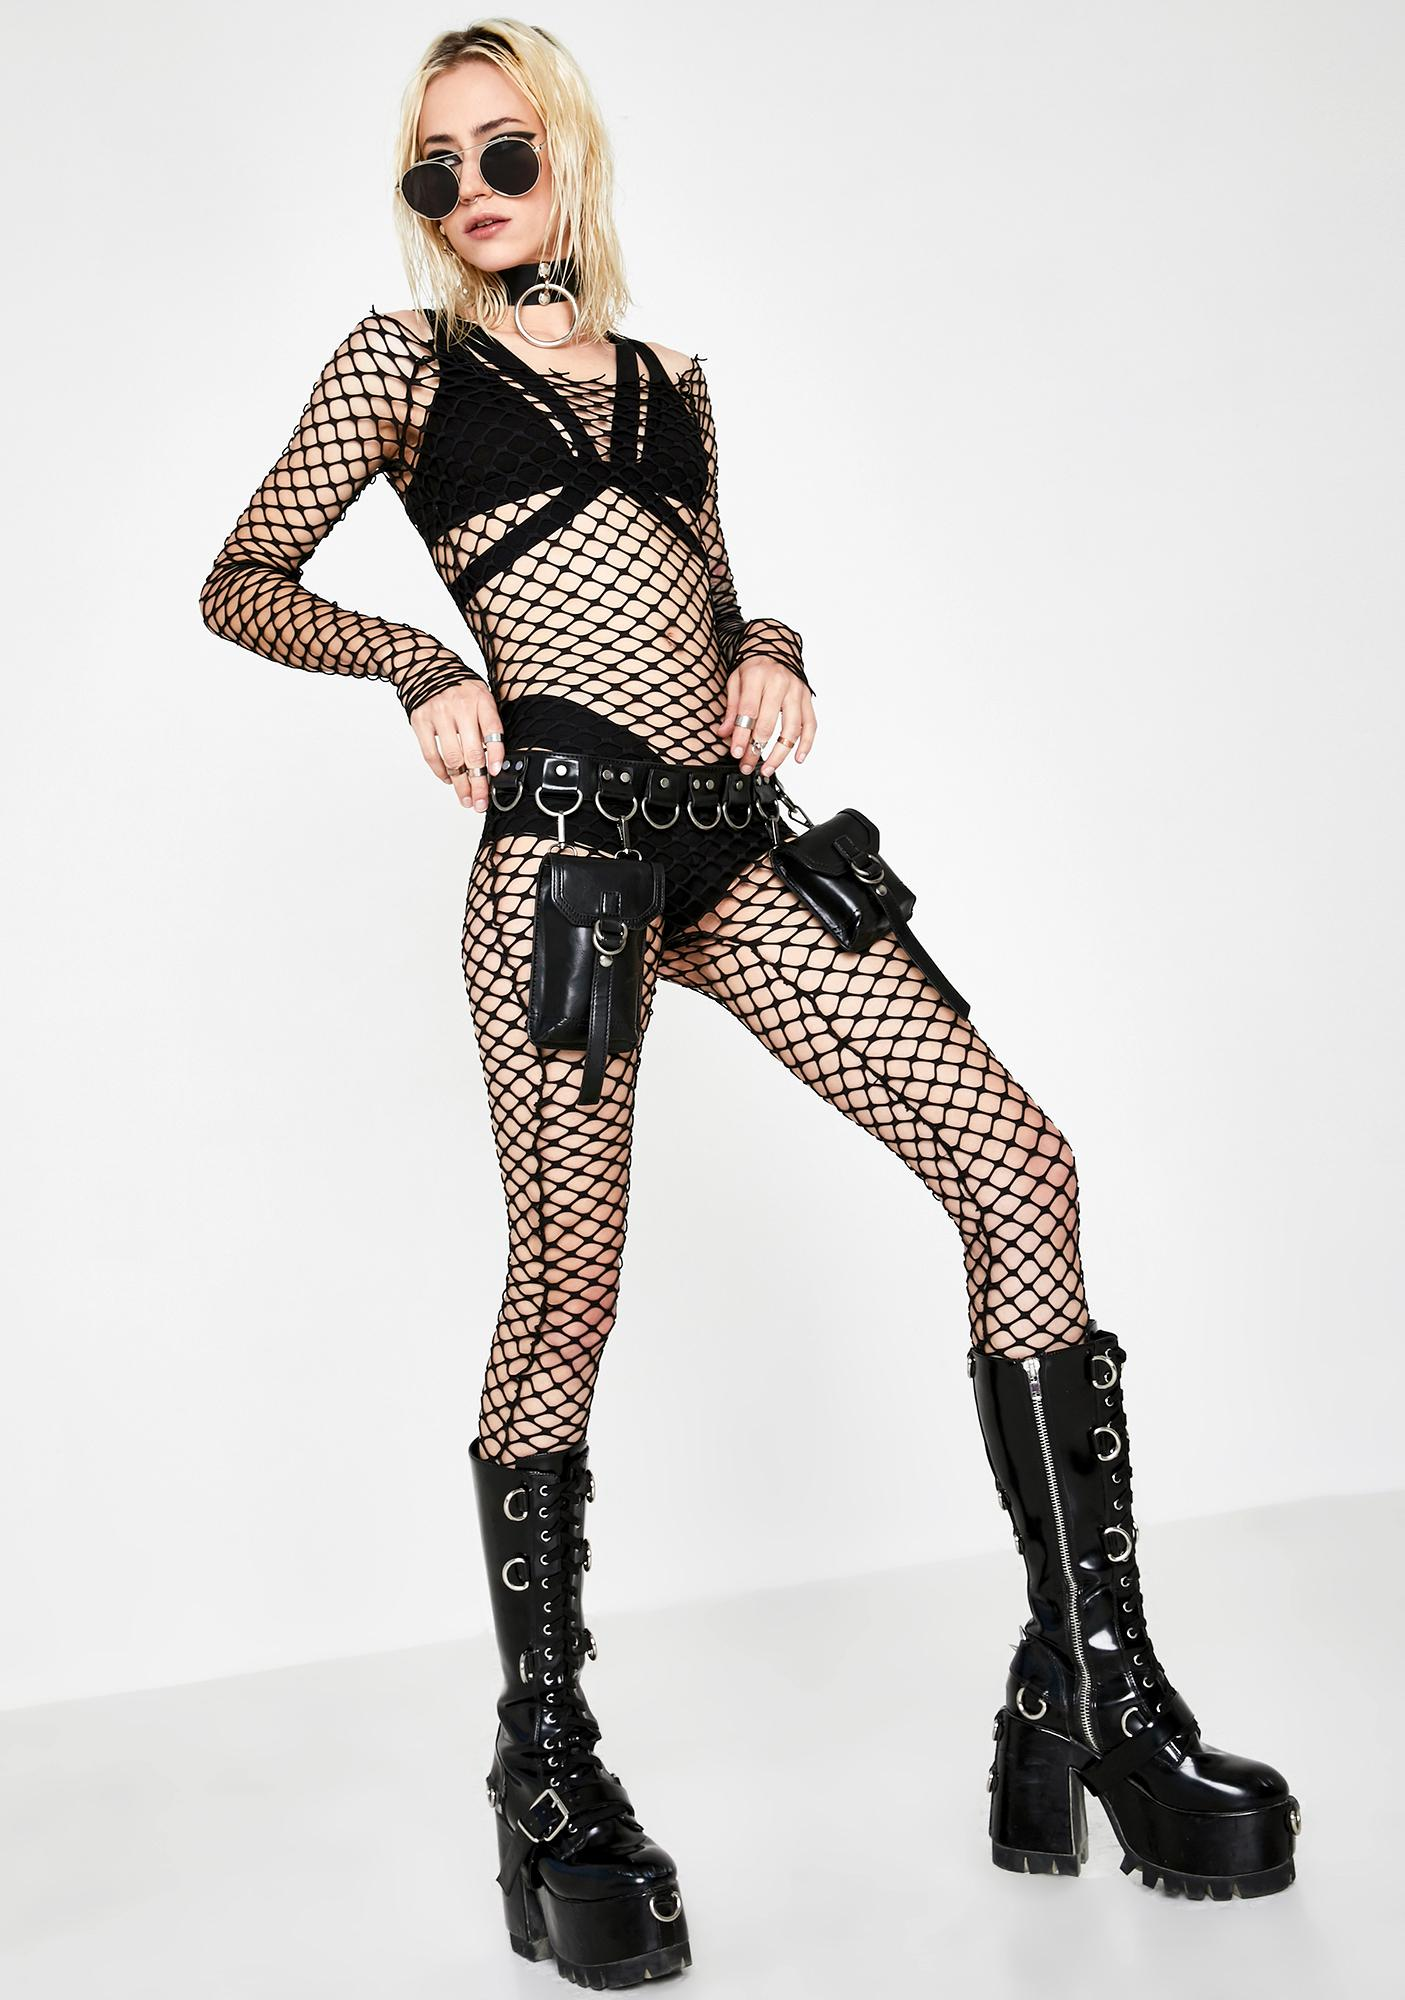 Kiki Riki Net Force Fishnet Catsuit